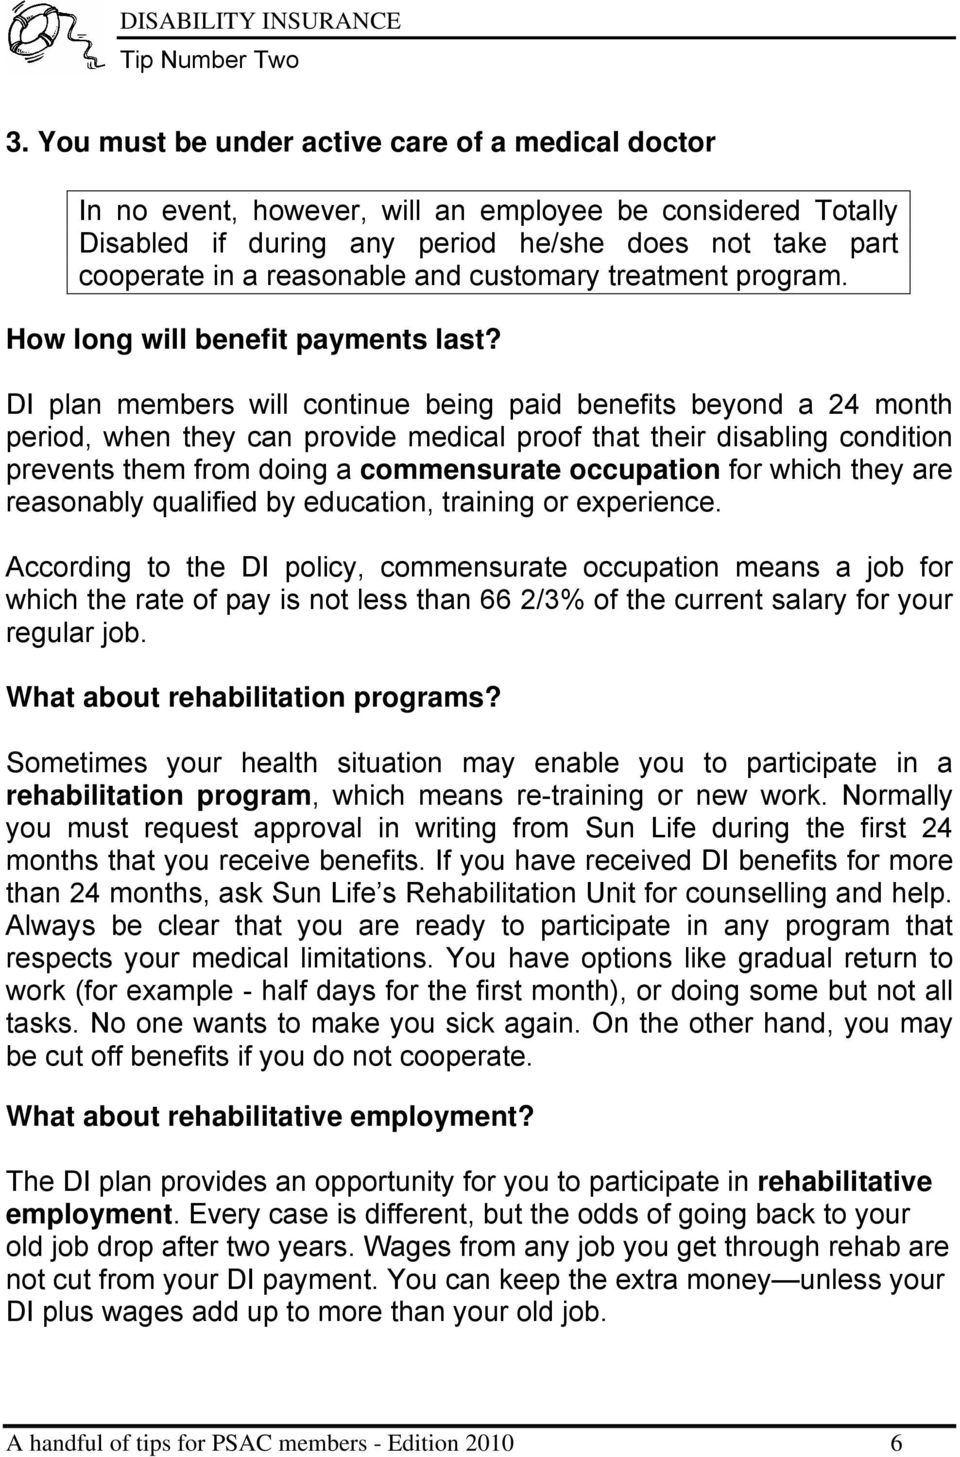 customary treatment program. How long will benefit payments last?